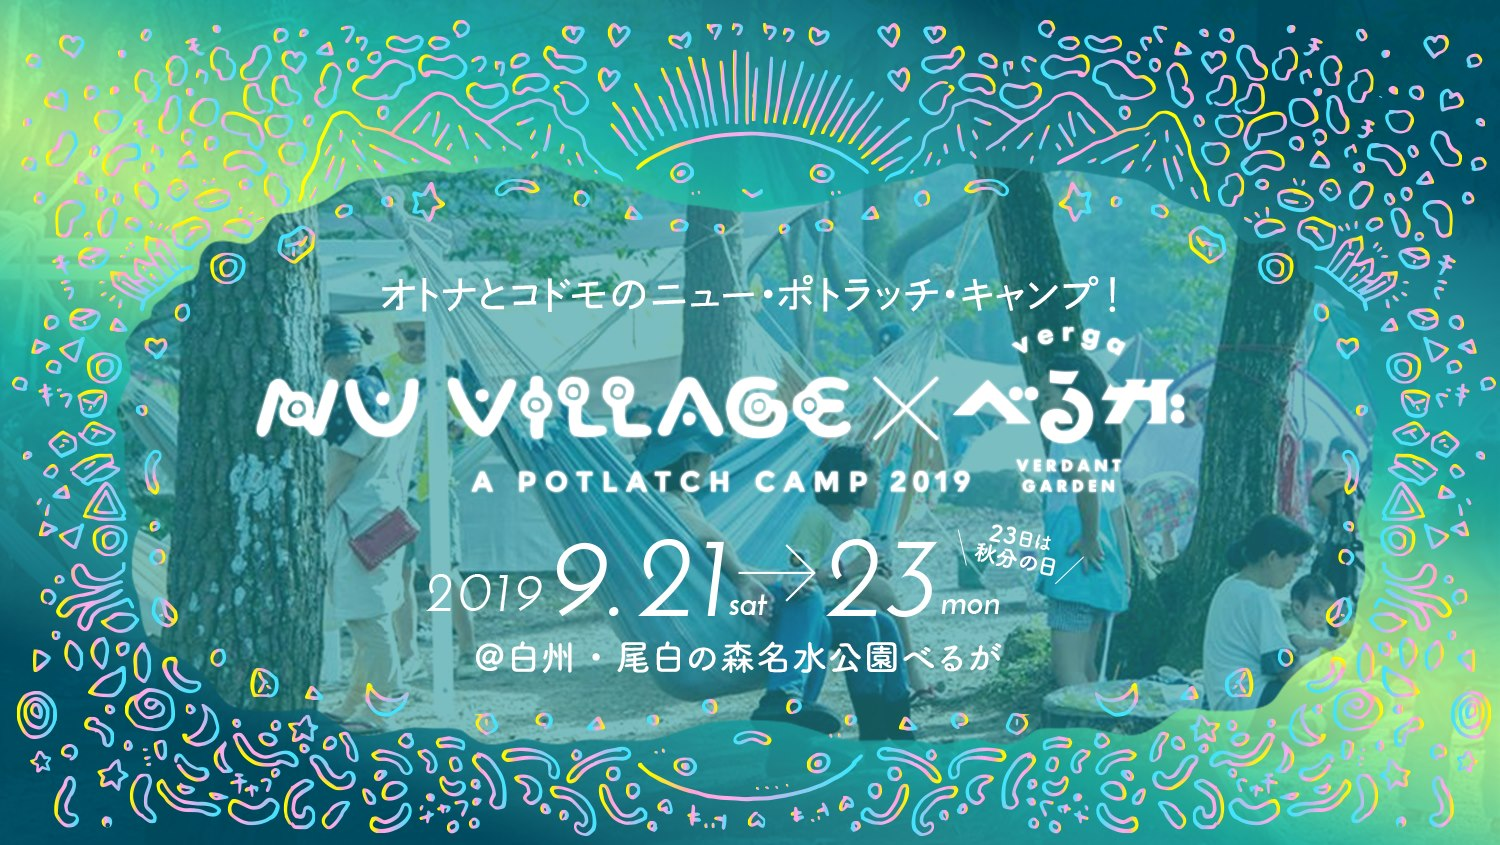 NU Village × べるが - a potlatch camp 2019